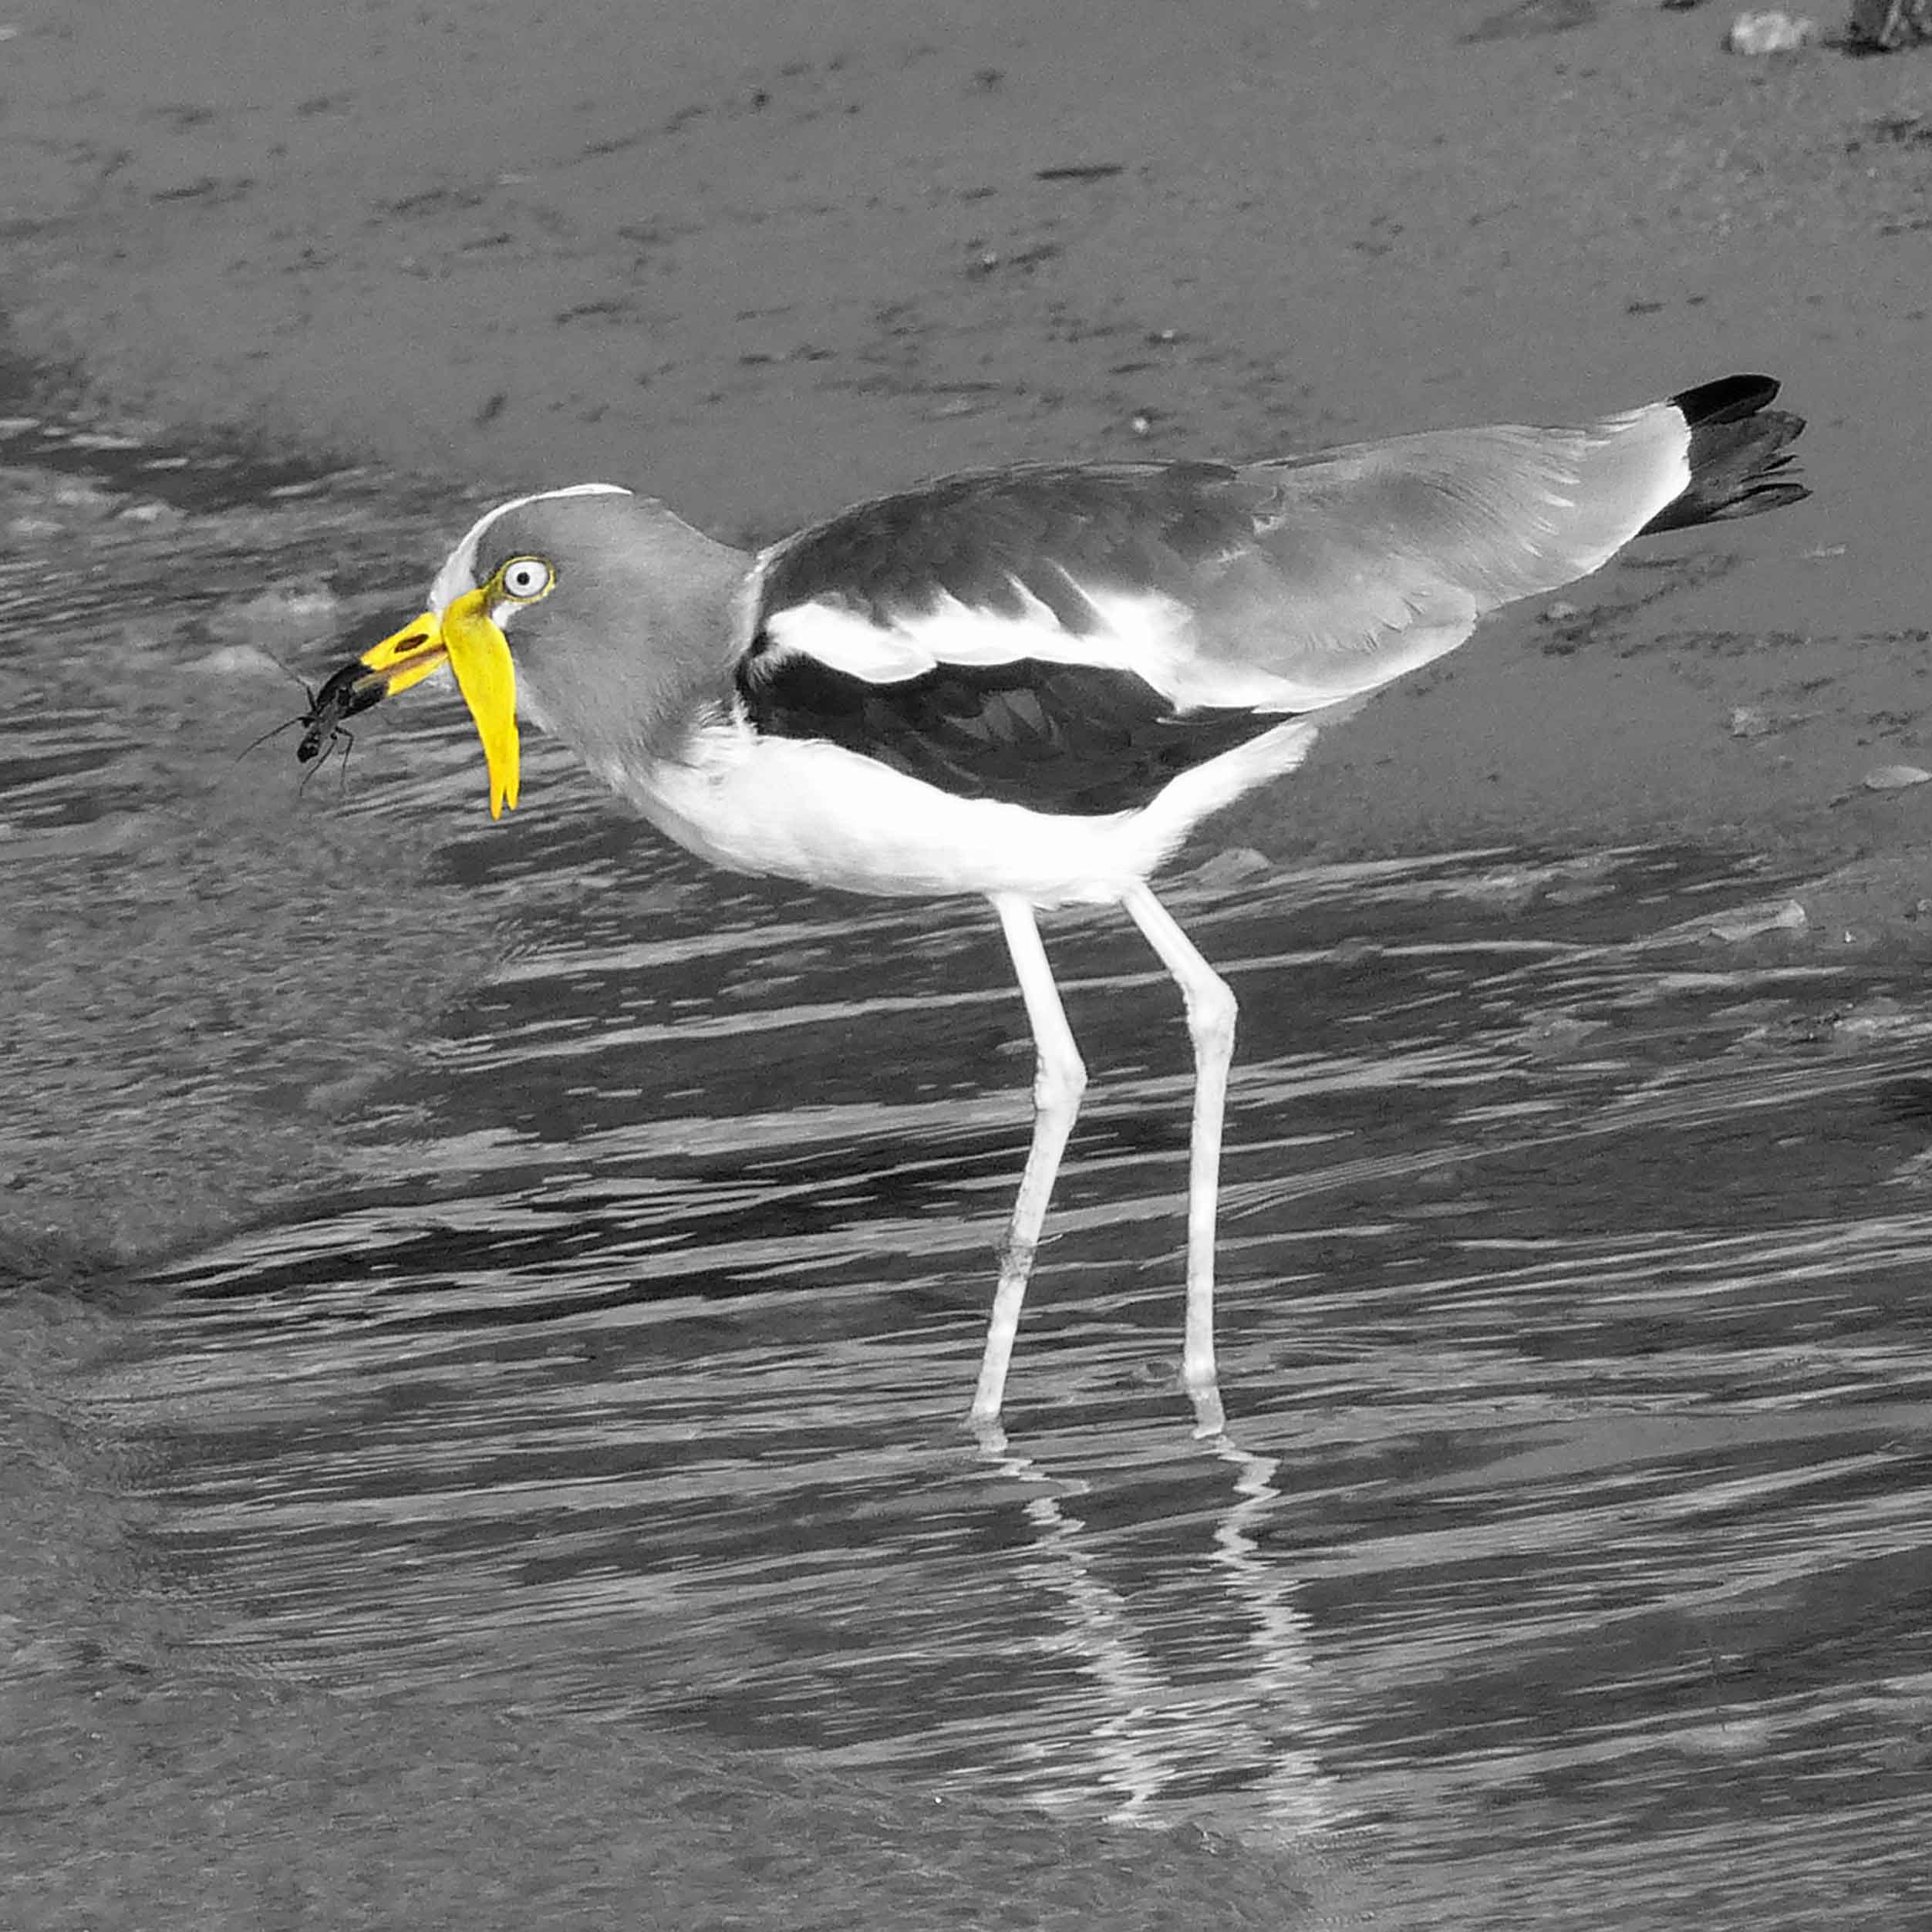 Long-legged bird catching an insect by a river, mostly black and white